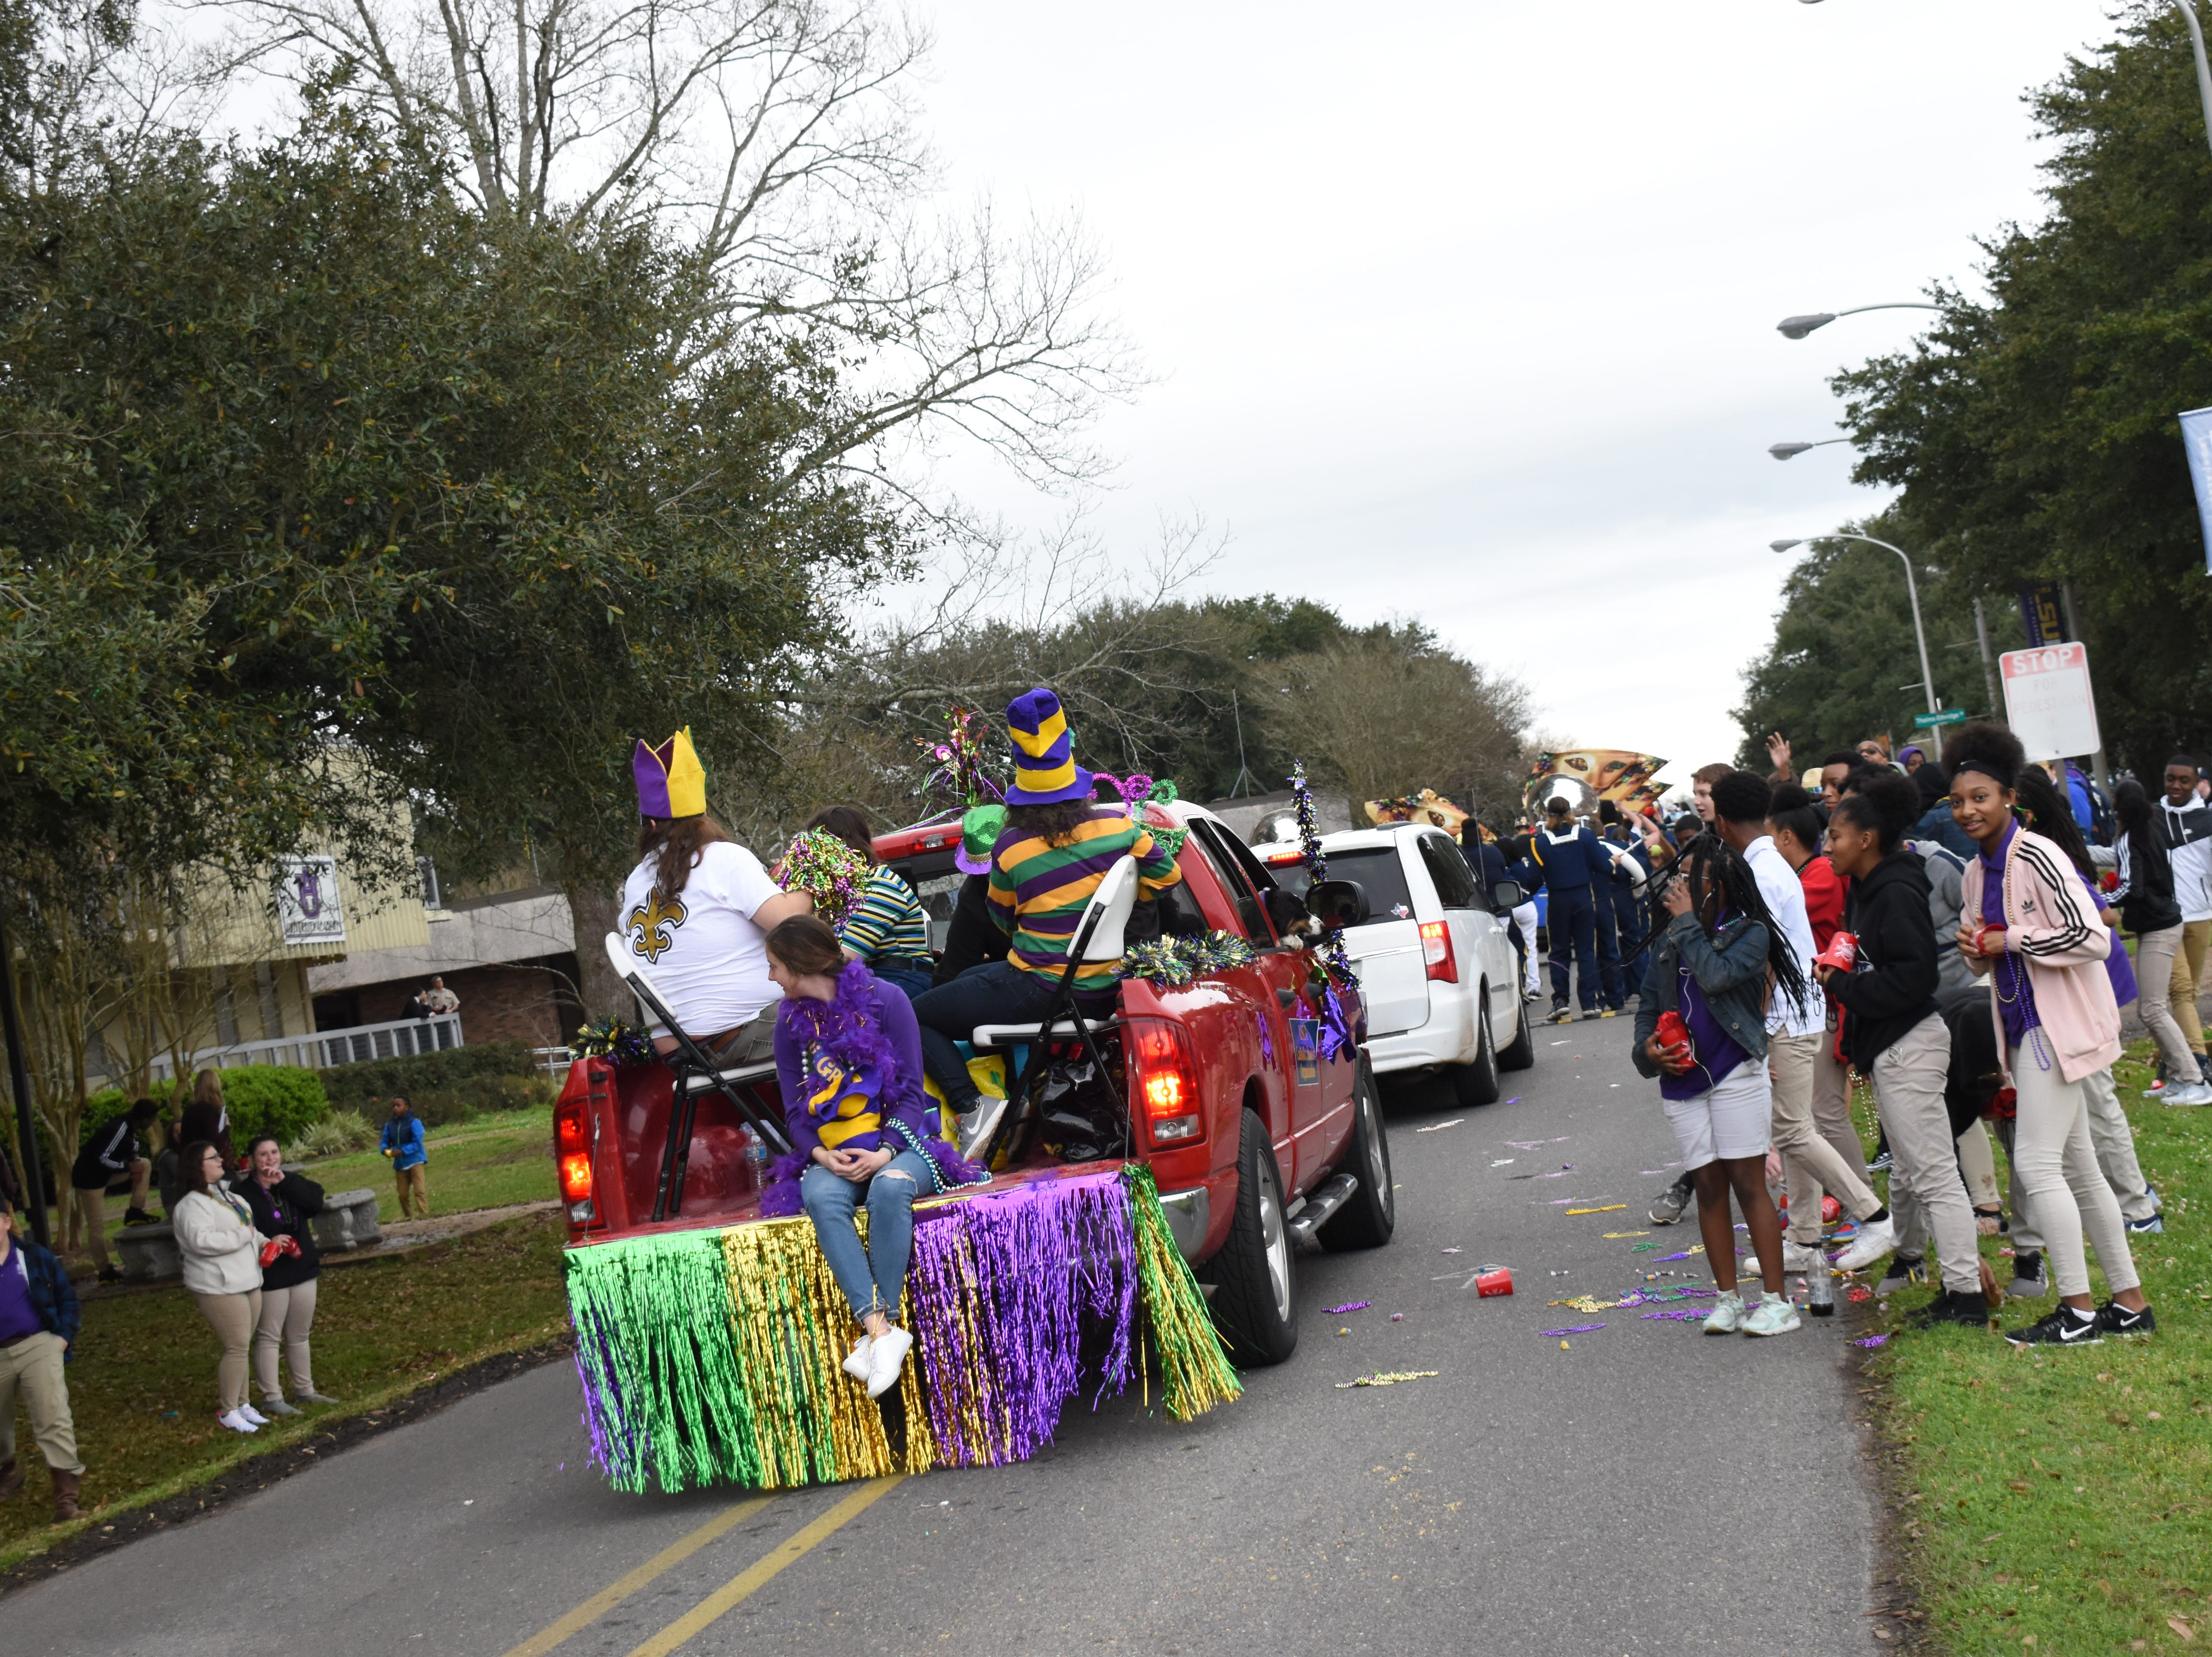 The annual LSUA Mardi Gras parade was held Wednesday, Feb. 27, 2019 on the campus. Campus organizations paraded through the campus tossing throws to people lining the route. The Bunkie High School band and the Avoyelles High School band also performed.